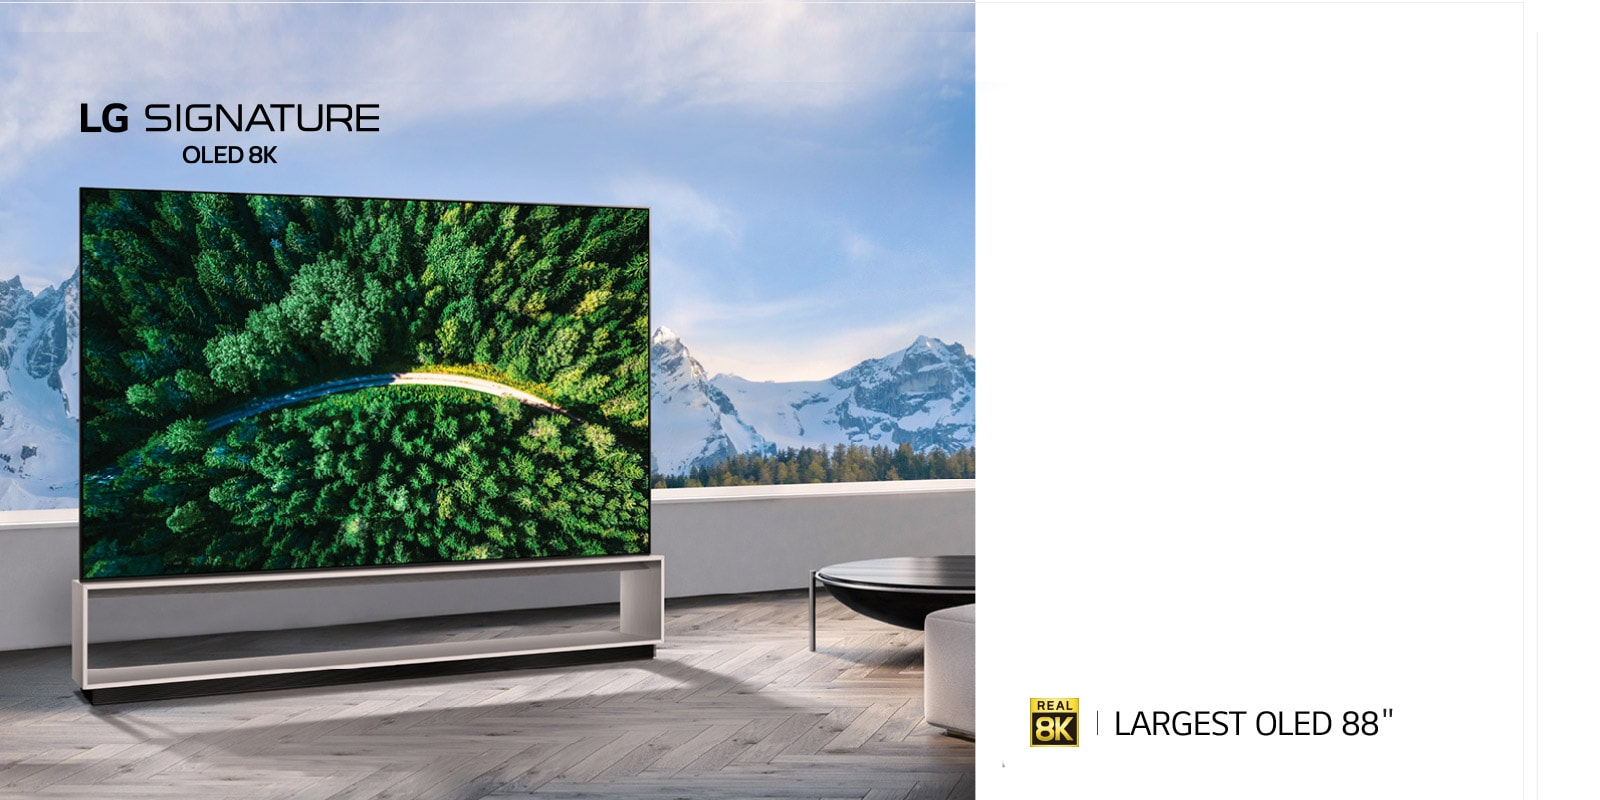 TV-SIGNATURE-OLED-Z9-Banner-D